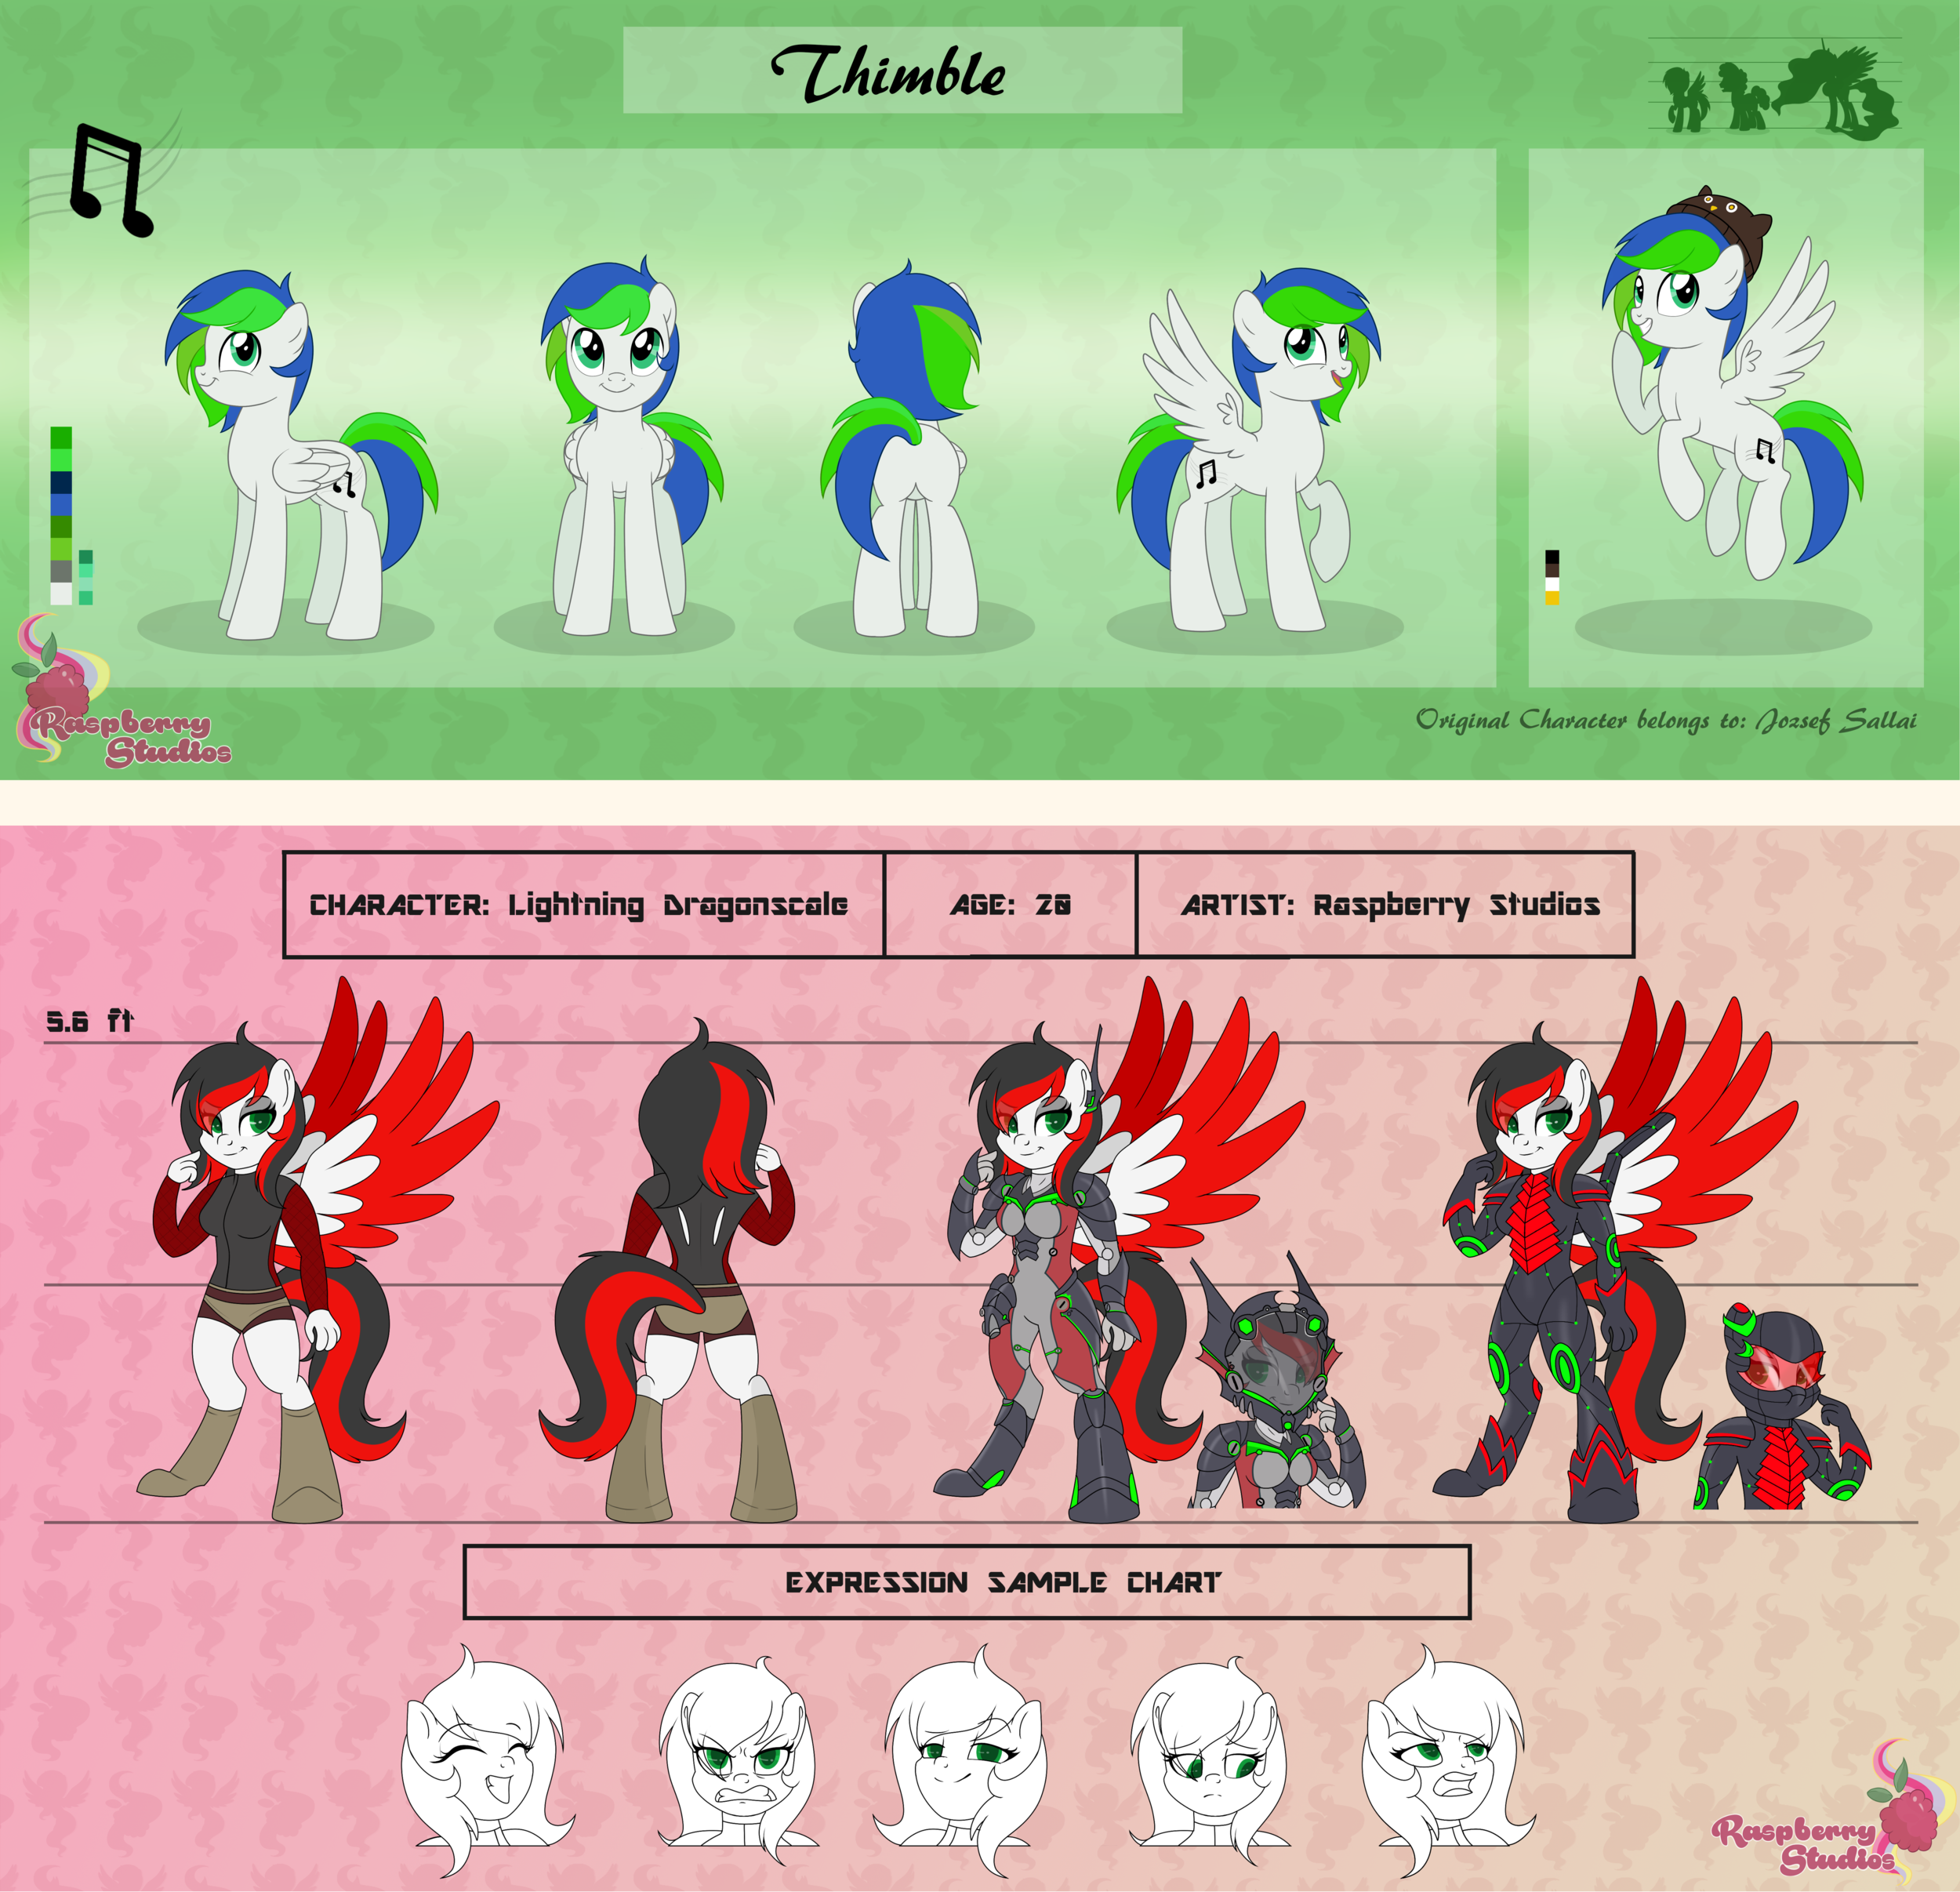 Large Reference Sheet - Pony/Feral: $40 USD - Additional Angle/Outfit $5Pony/Feral reference sheets show your original character from four different angles (front, back, side, and 3/4) and one extra (your choice of pose/outfit).________________________________________________Anthro/Humanoid: $60 USD - Additional Angle/Outfit $10Anthro reference sheets come with a front and back pose of your character's main outfit plus two extra (can show character markings or other outfits). Comes with up to five expressions.________________________________________________Please note there is an extra charge for any redesign work I am asked to do on characters or clothing. Price varies depending on the amount of work I am asked to do.